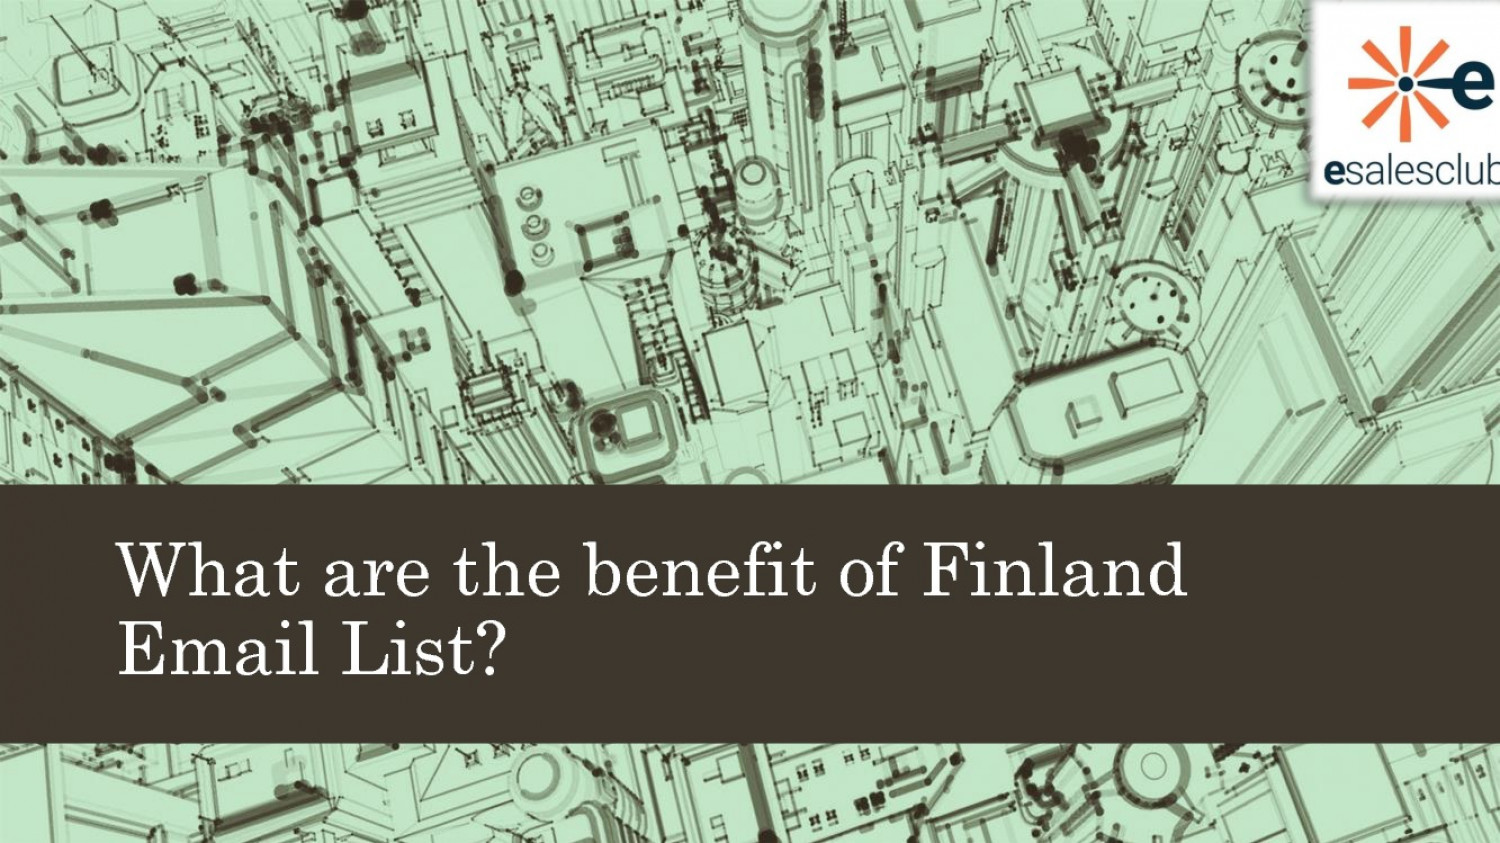 What are the benefit of Finland Email List - Esalesclub Infographic